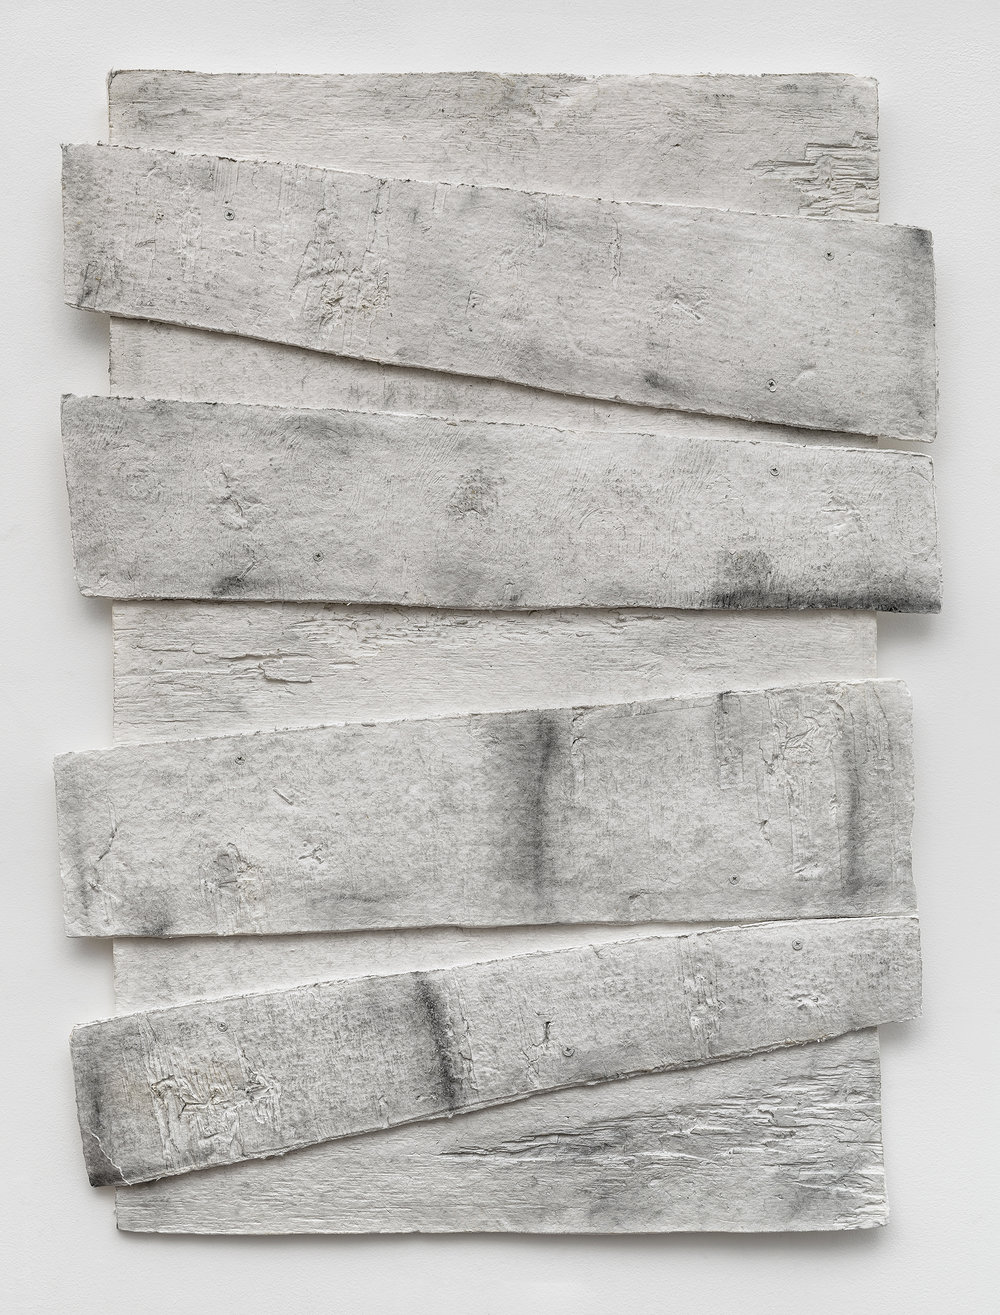 Diana Shpungin   Don't Let The Light In 4 (Stained) , 2018  Graphite, casting cotton paper pulp, linen paper   36 x 46 x 1 inches  Image copyright and courtesy of Etienne Frossard.